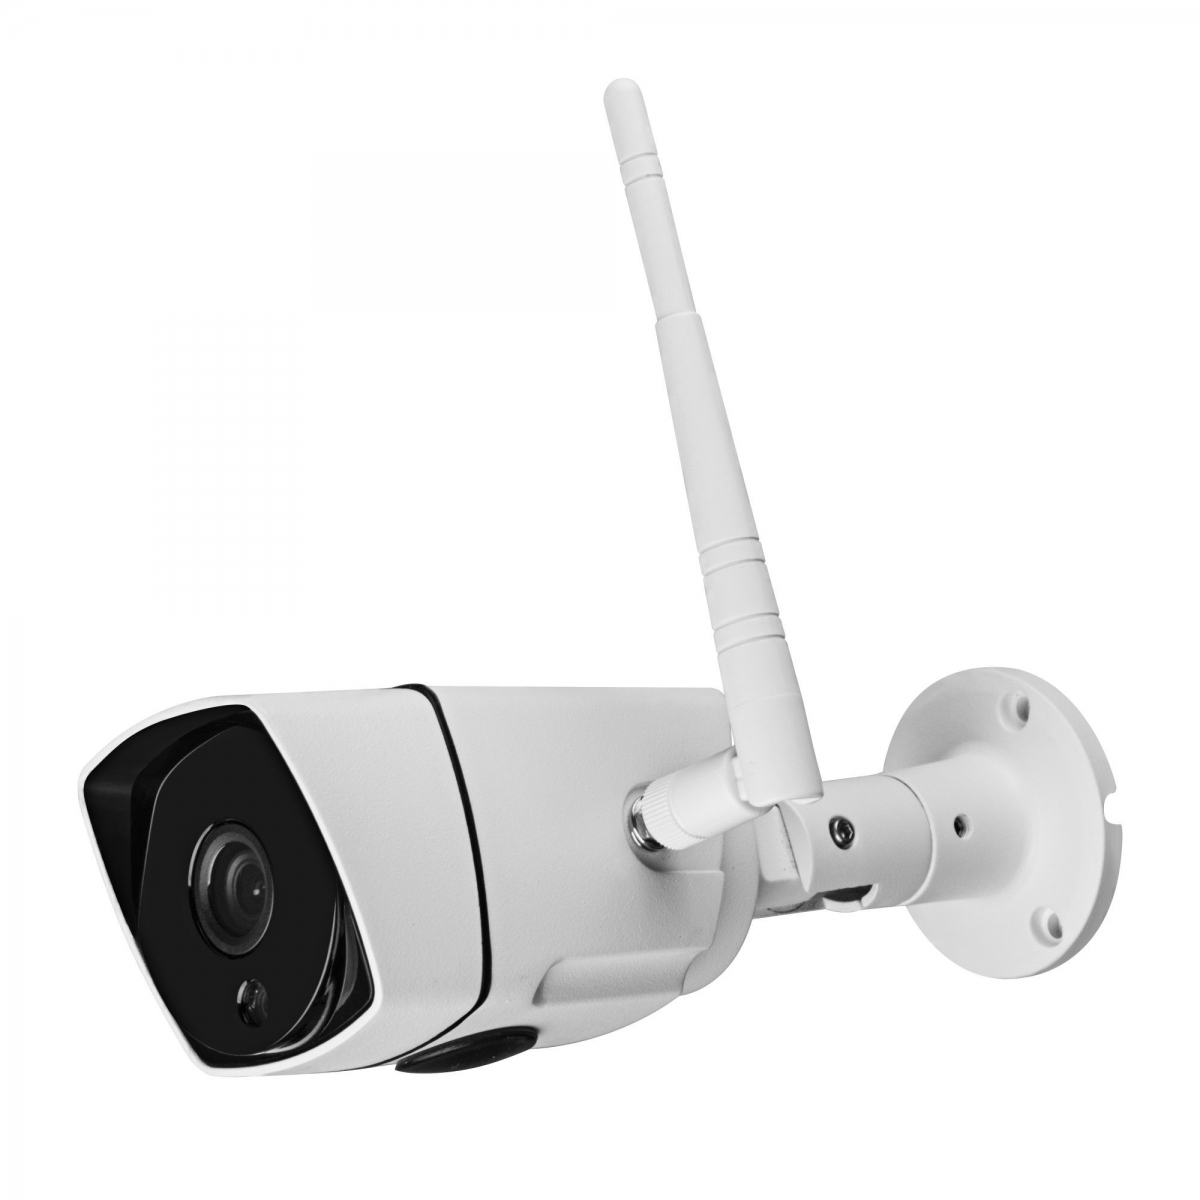 Ebitcam EB02 (2.0 MP) outdoor